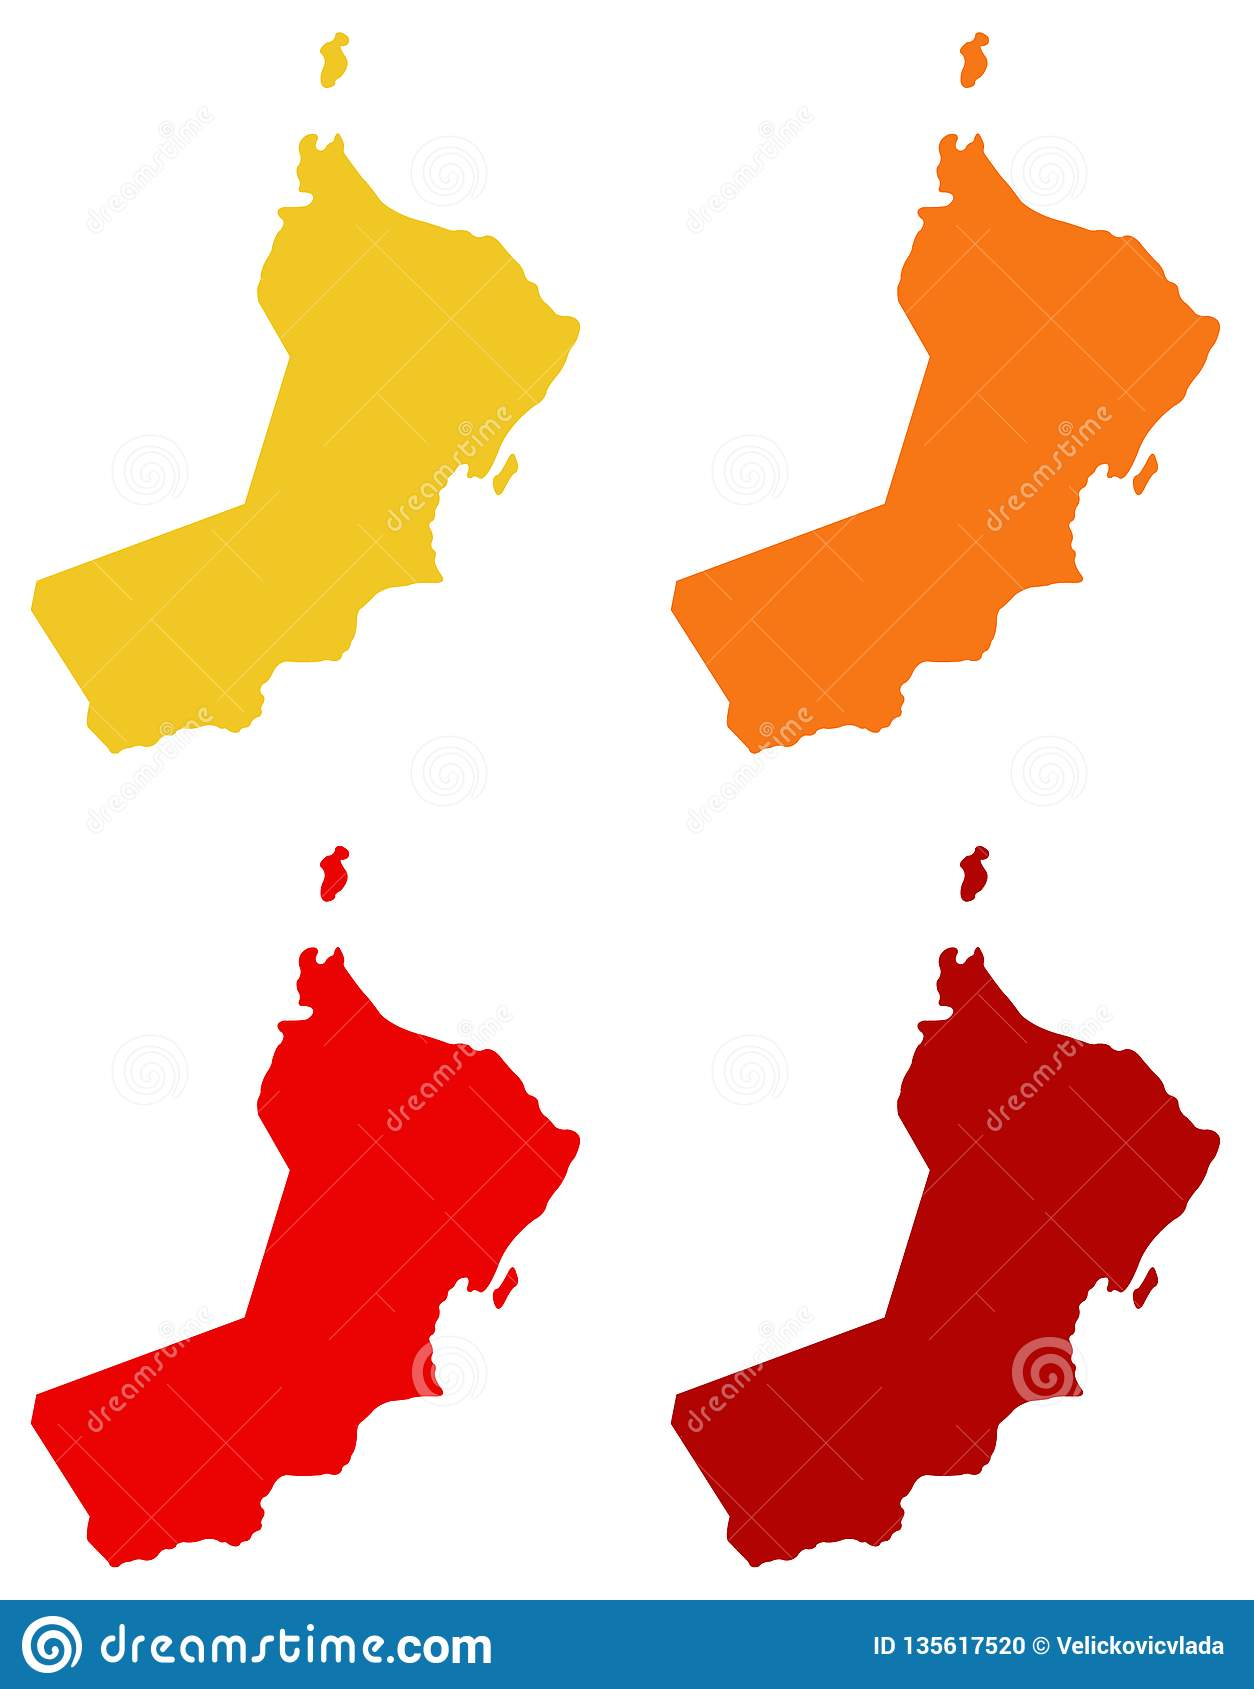 Oman Map - Sultanate Of Oman Stock Vector - Illustration of